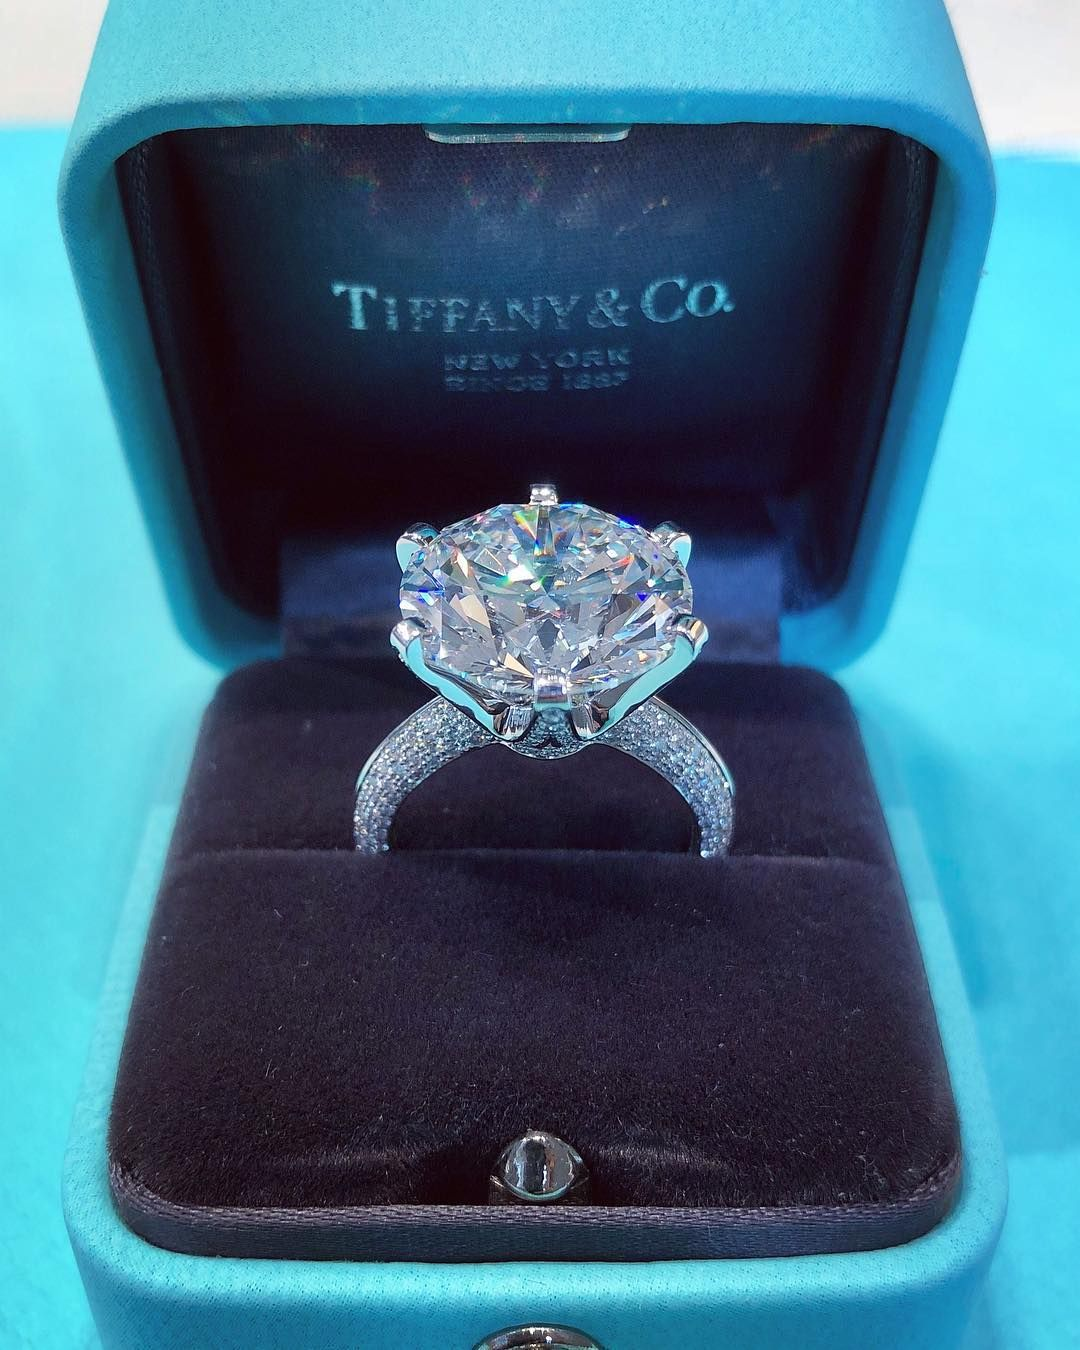 Check Out Some More Cute Rings Big Wedding Rings Engagement Rings Tiffany Wedding Rings